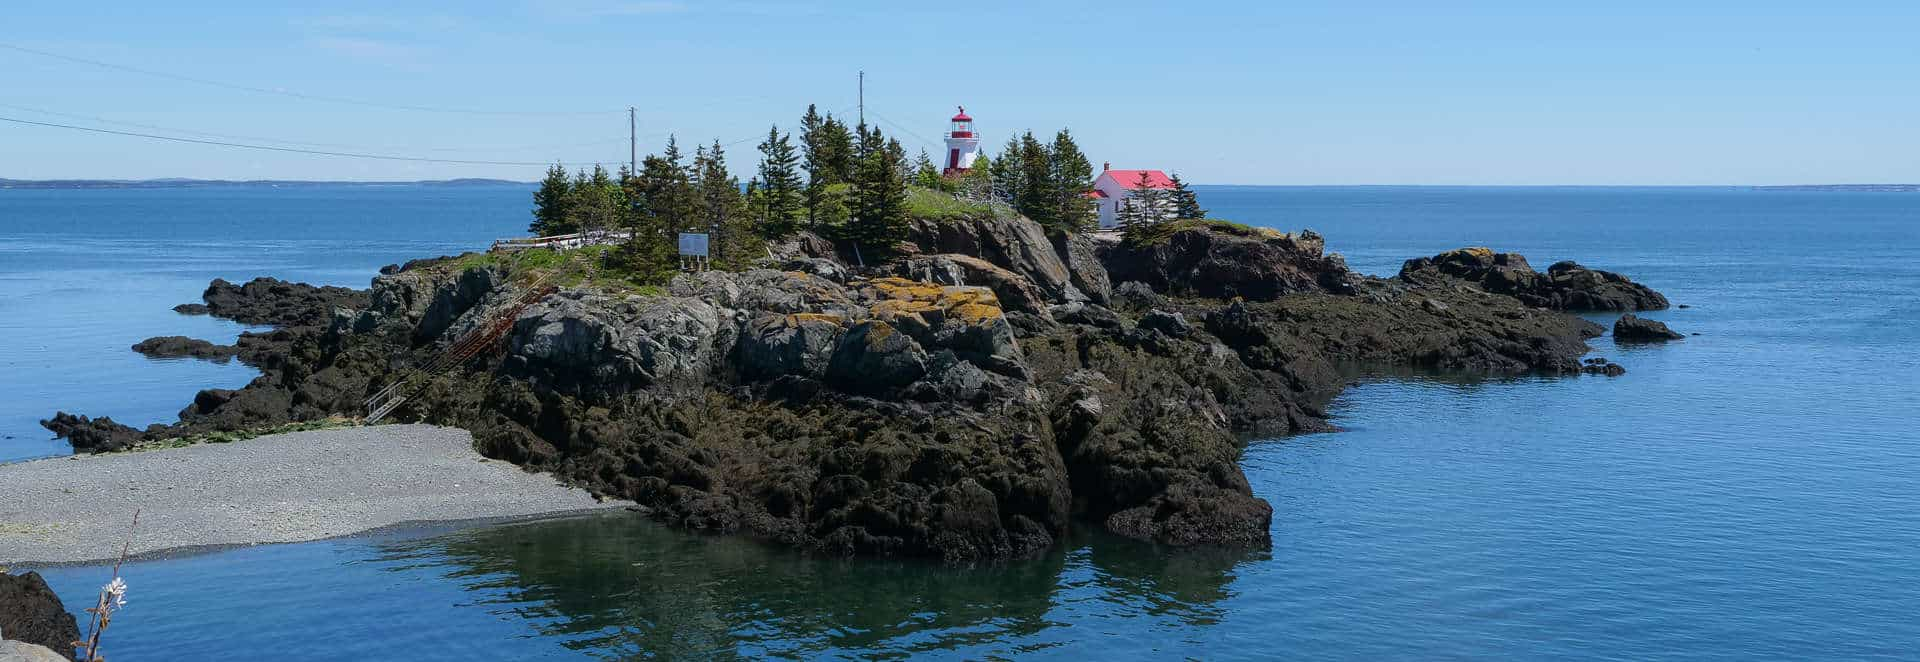 Intrepid Escape - 10 things you must do New Brunswick Fundy